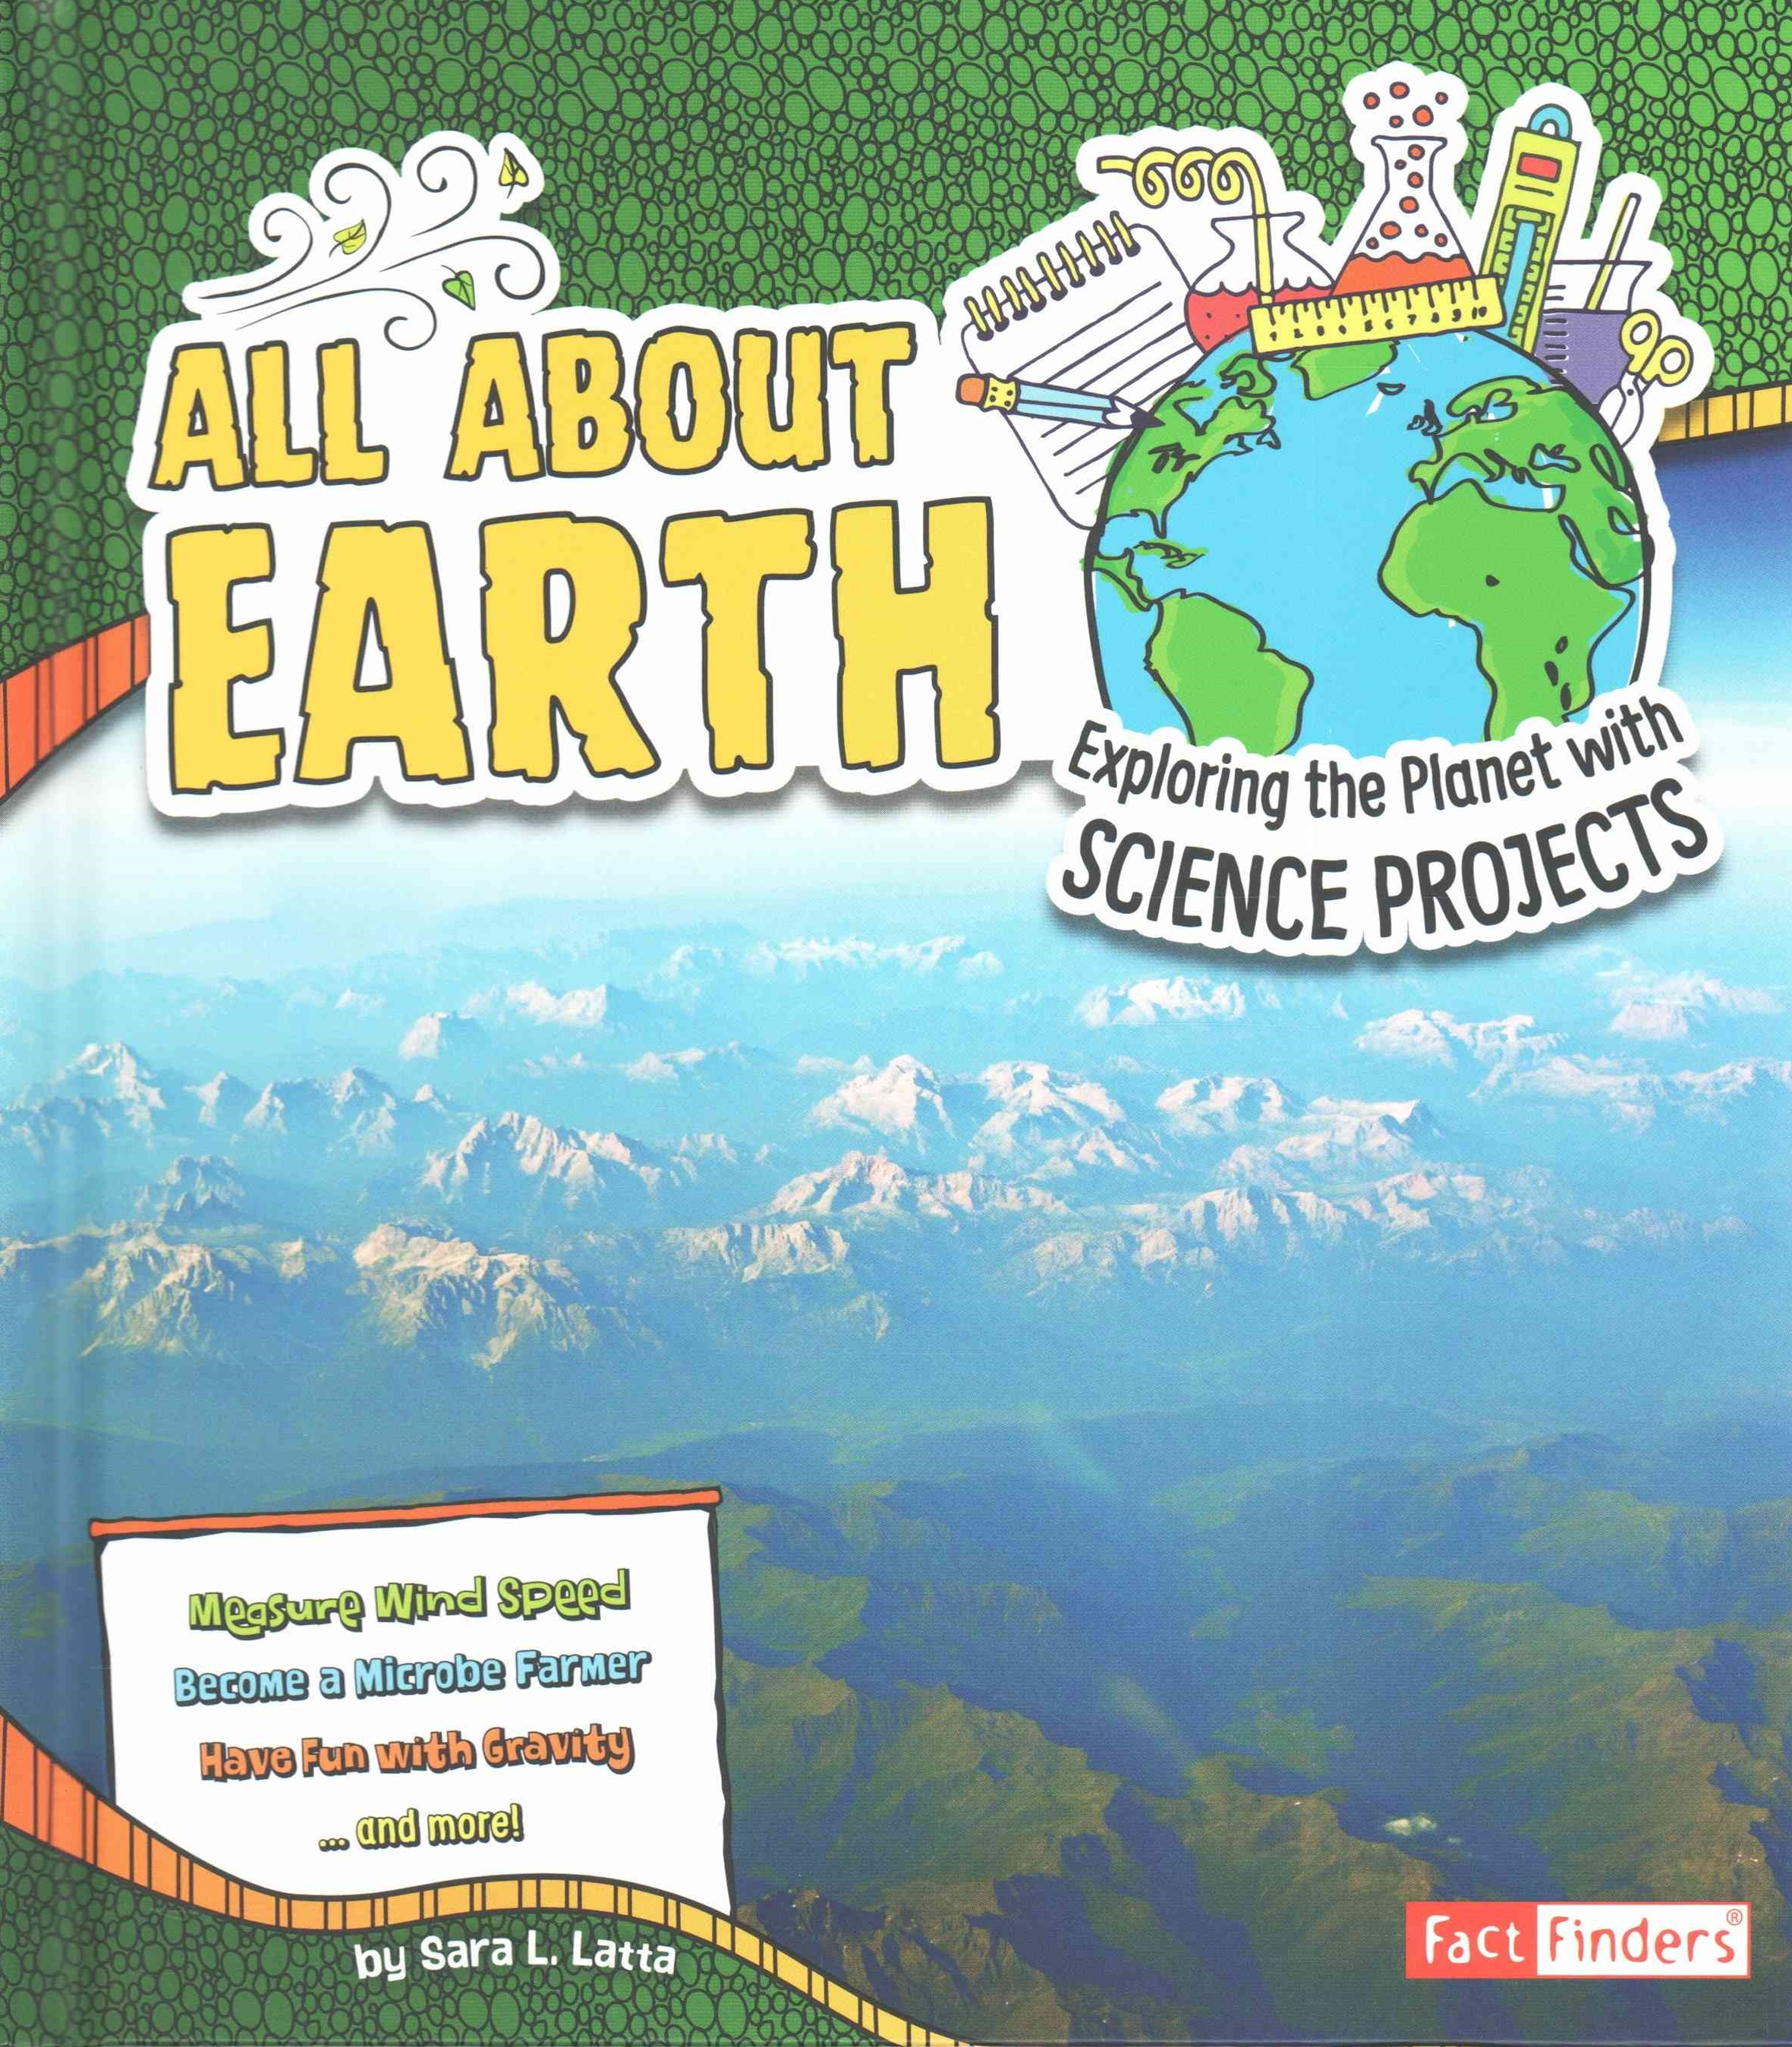 All about Earth